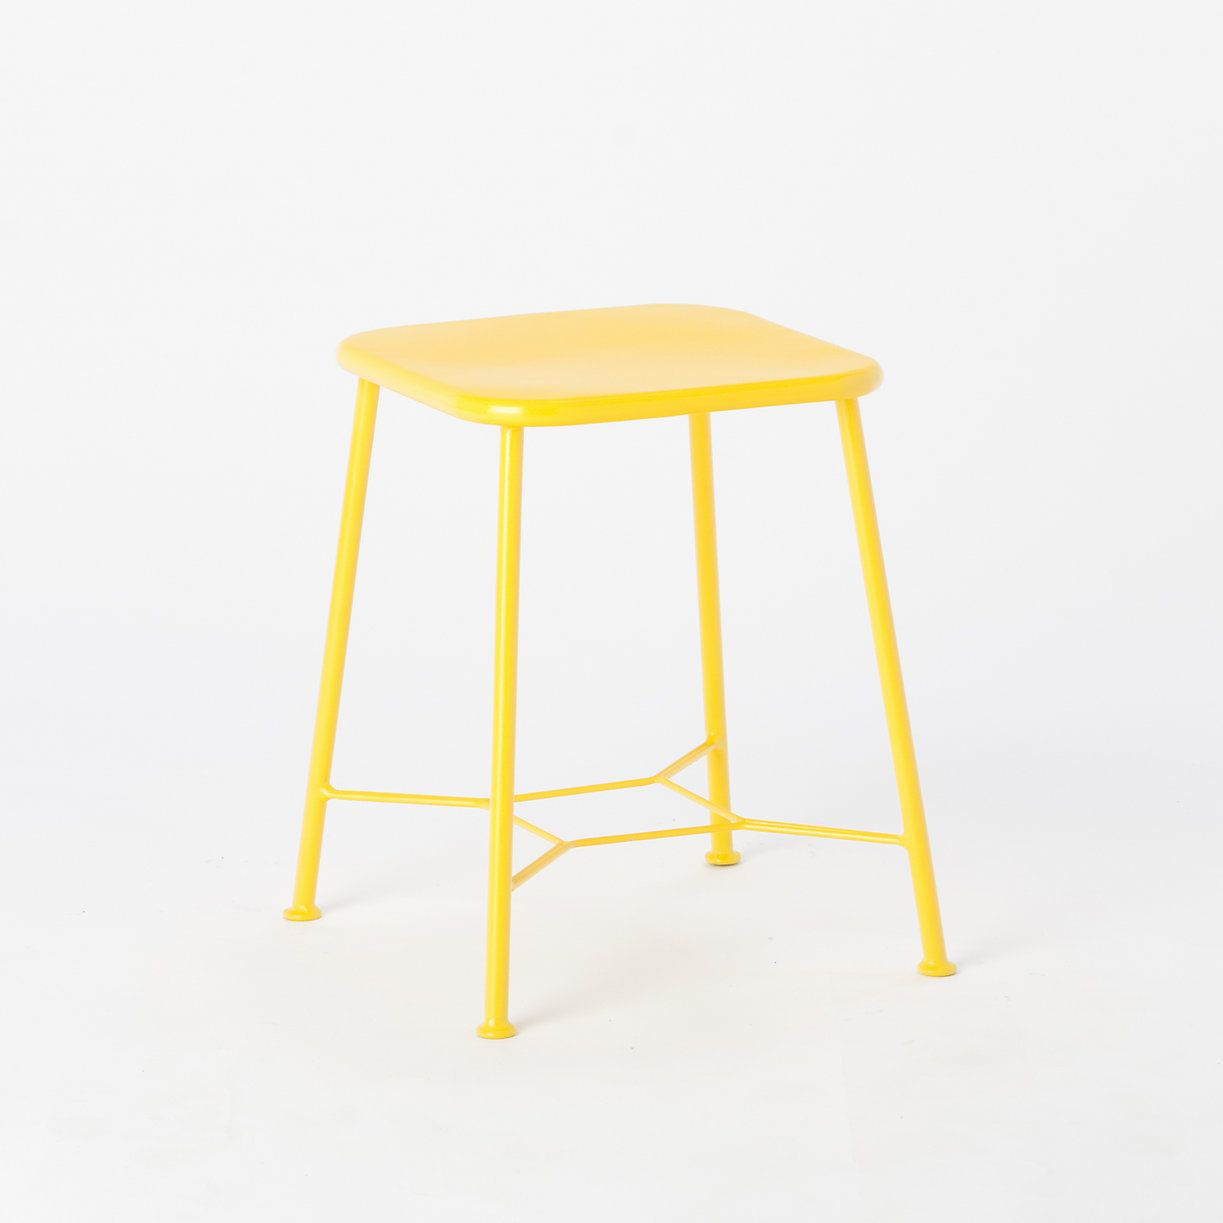 Iron Garden Stool in Outdoor Living FURNITURE + ACCENTS Shop by Collection Colorful Wire at Terrain